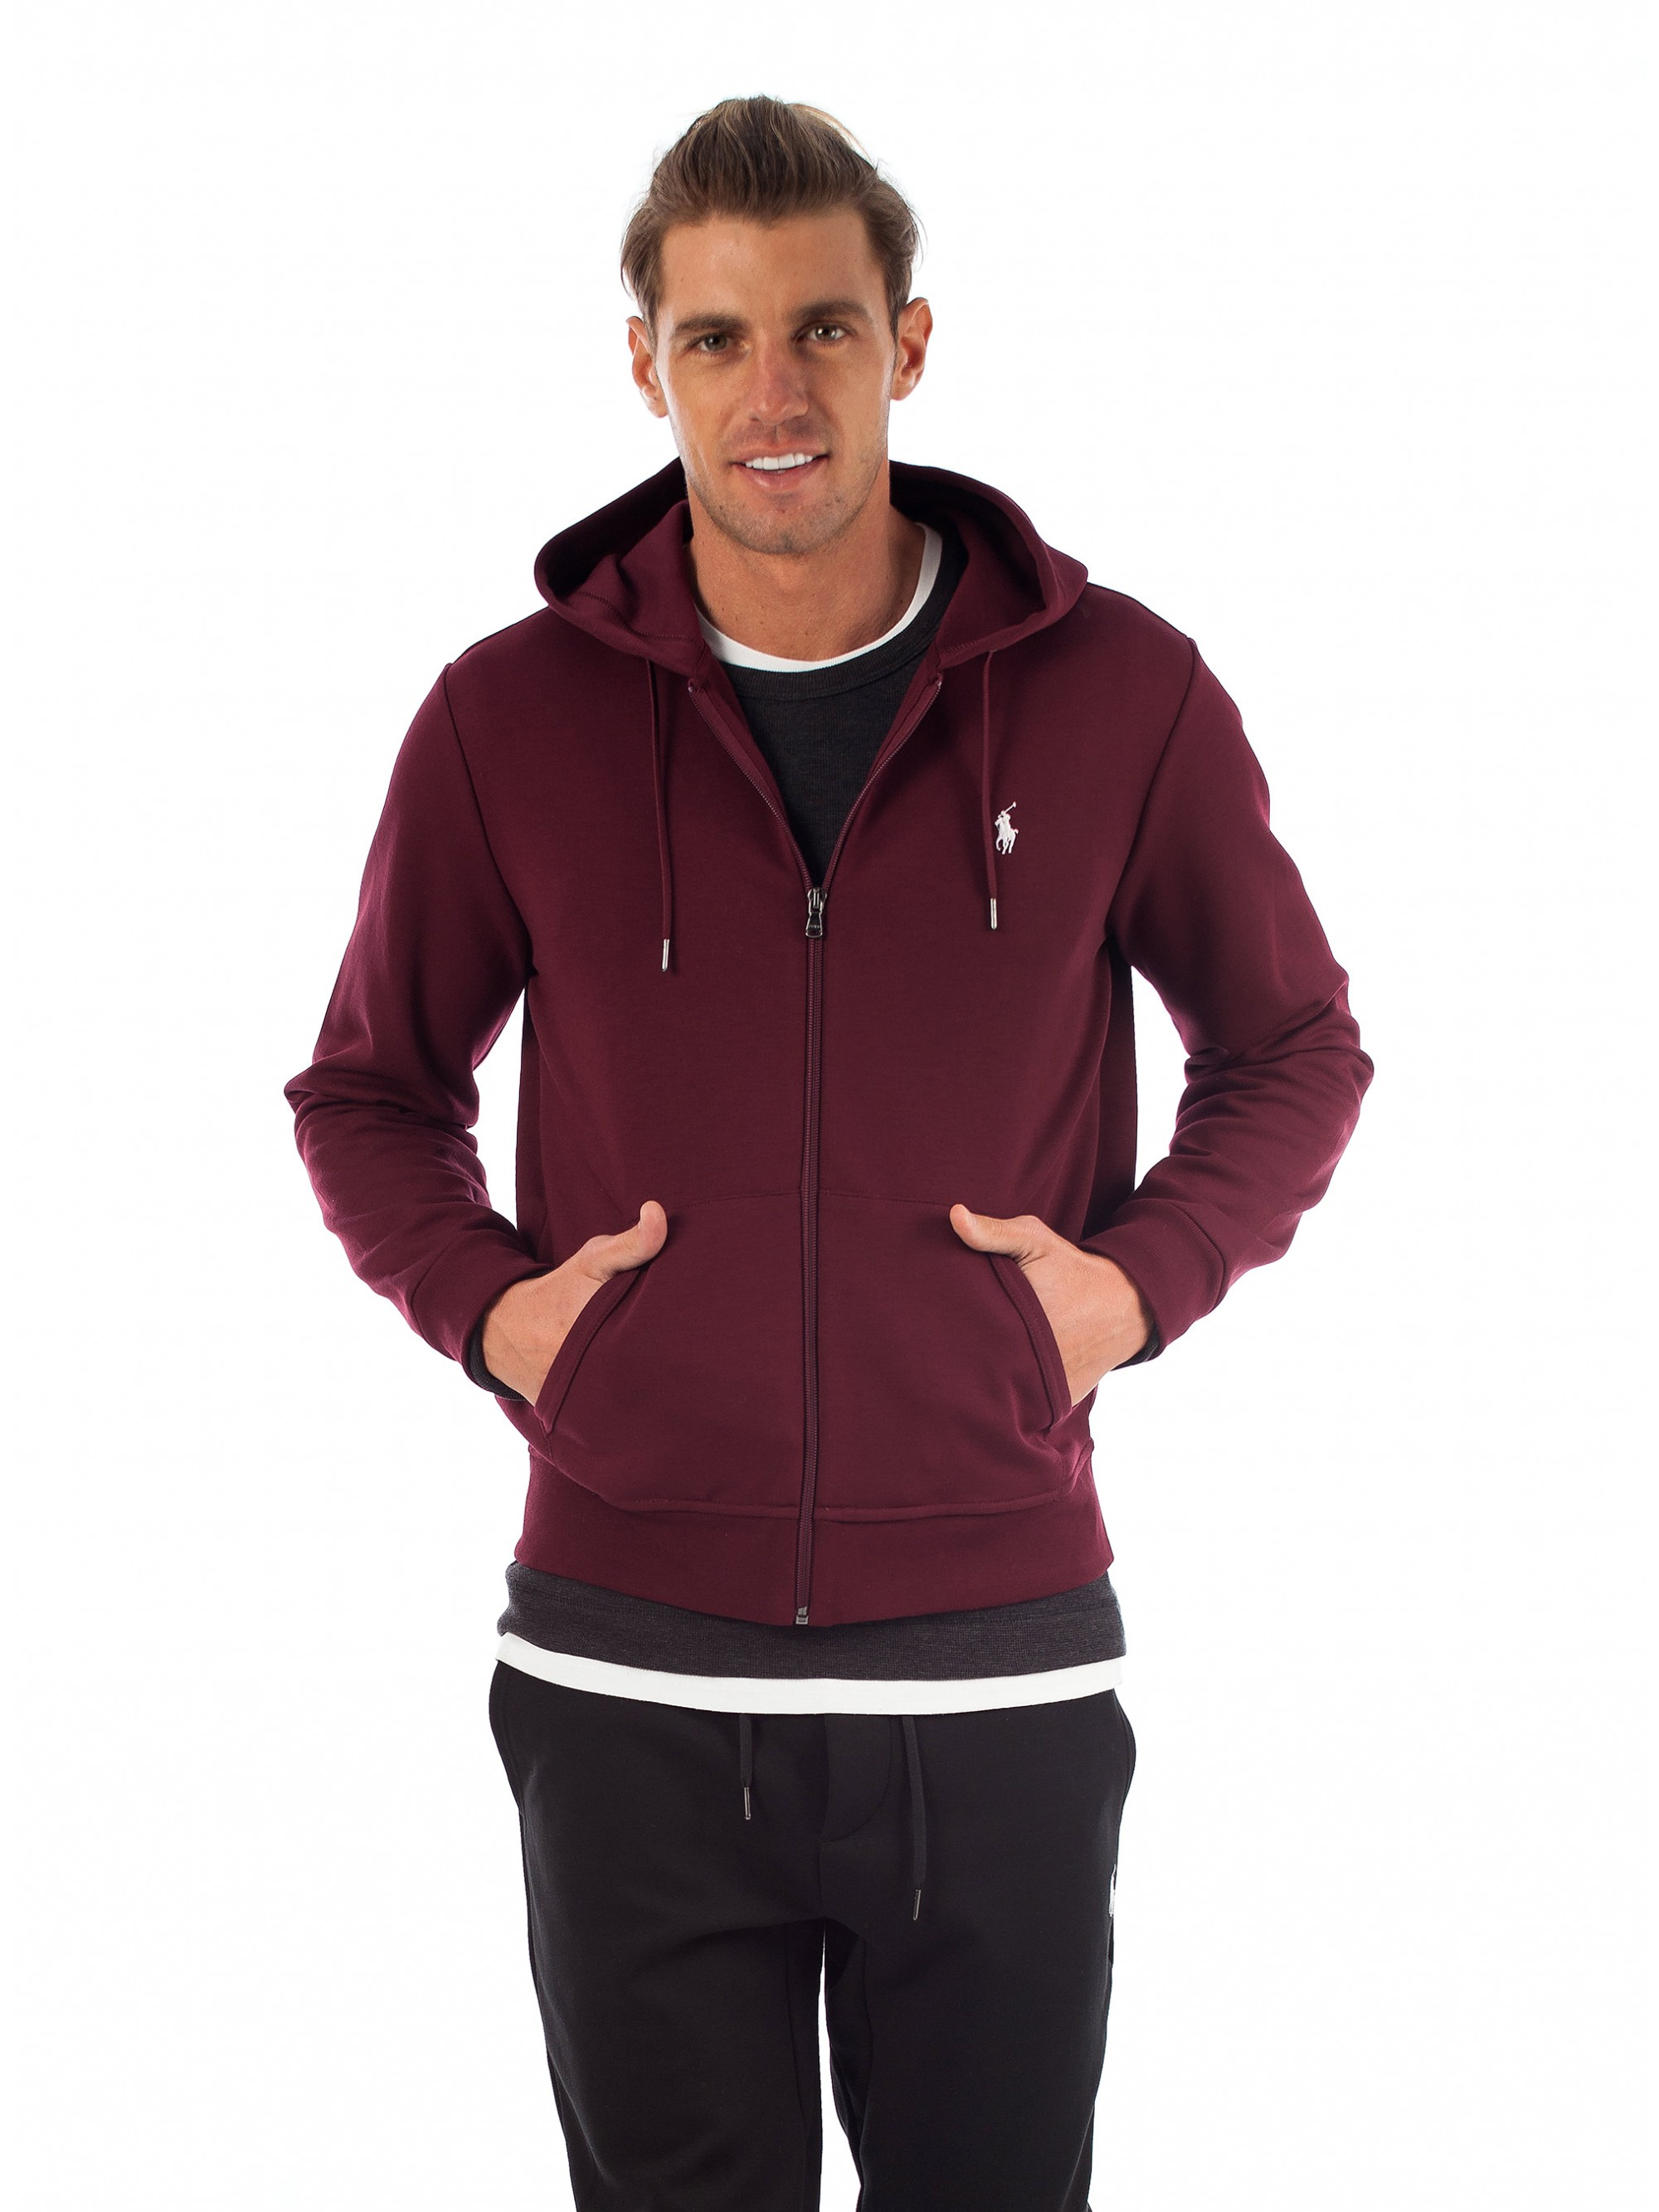 716b064d87c76 Home · Fall-Winter 2018-19  Polo Ralph Lauren Zip Hoodie-Bordeaux. Tap to  expand · Tap to expand